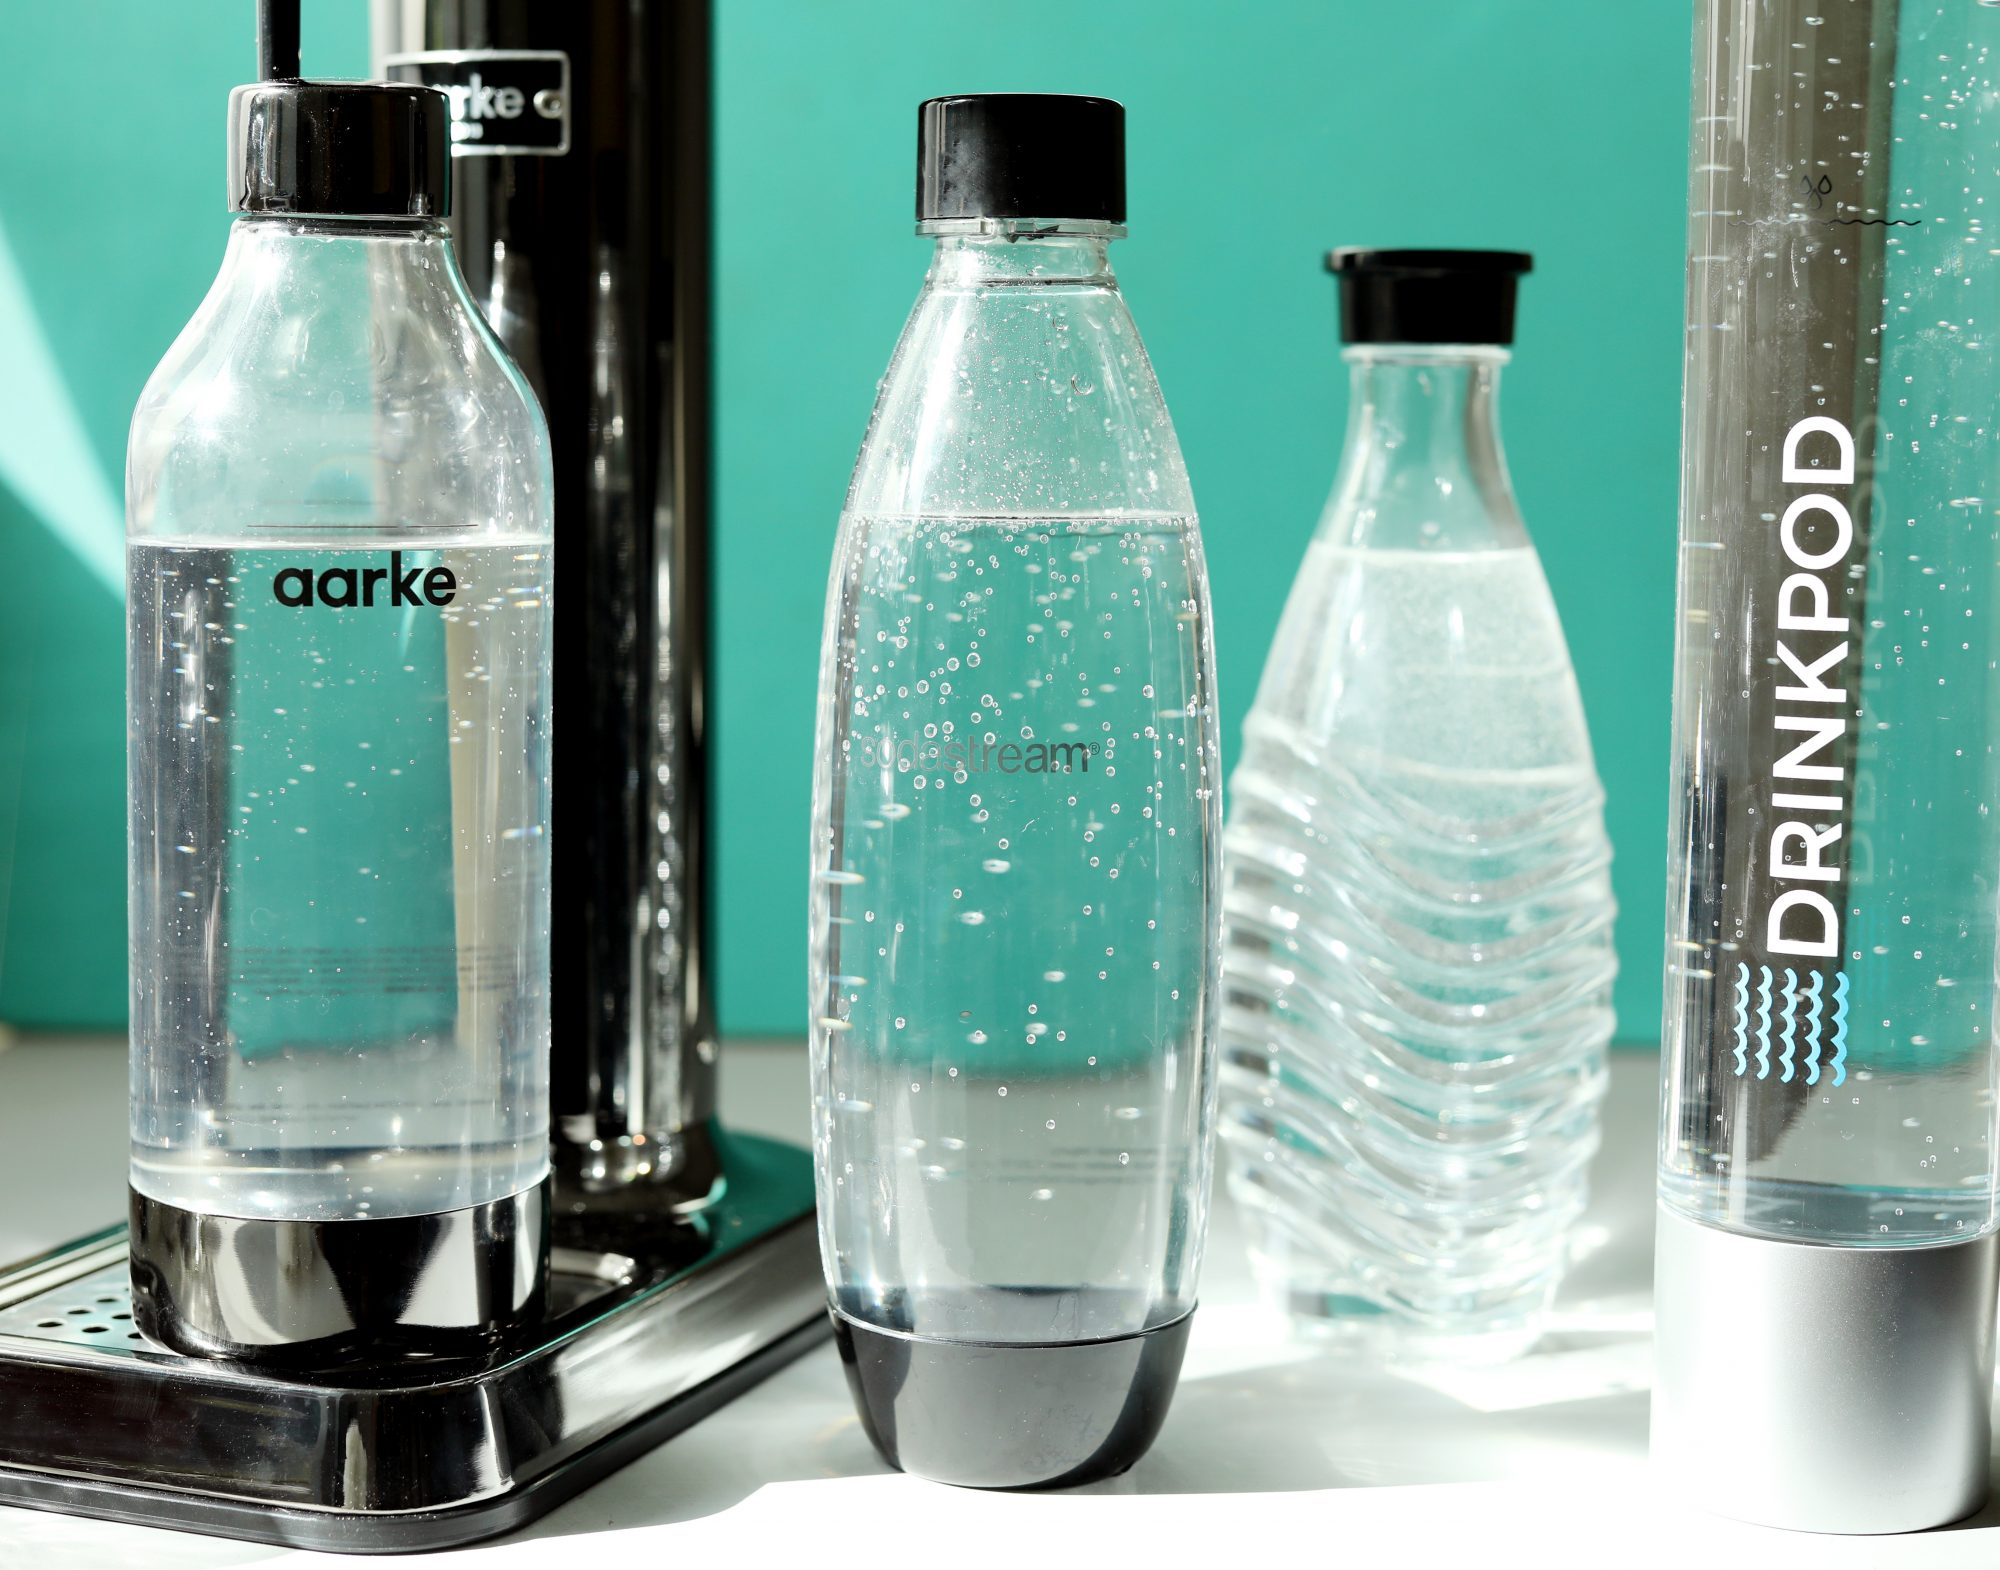 Sparkling water inside plastic soda maker containers with teal background